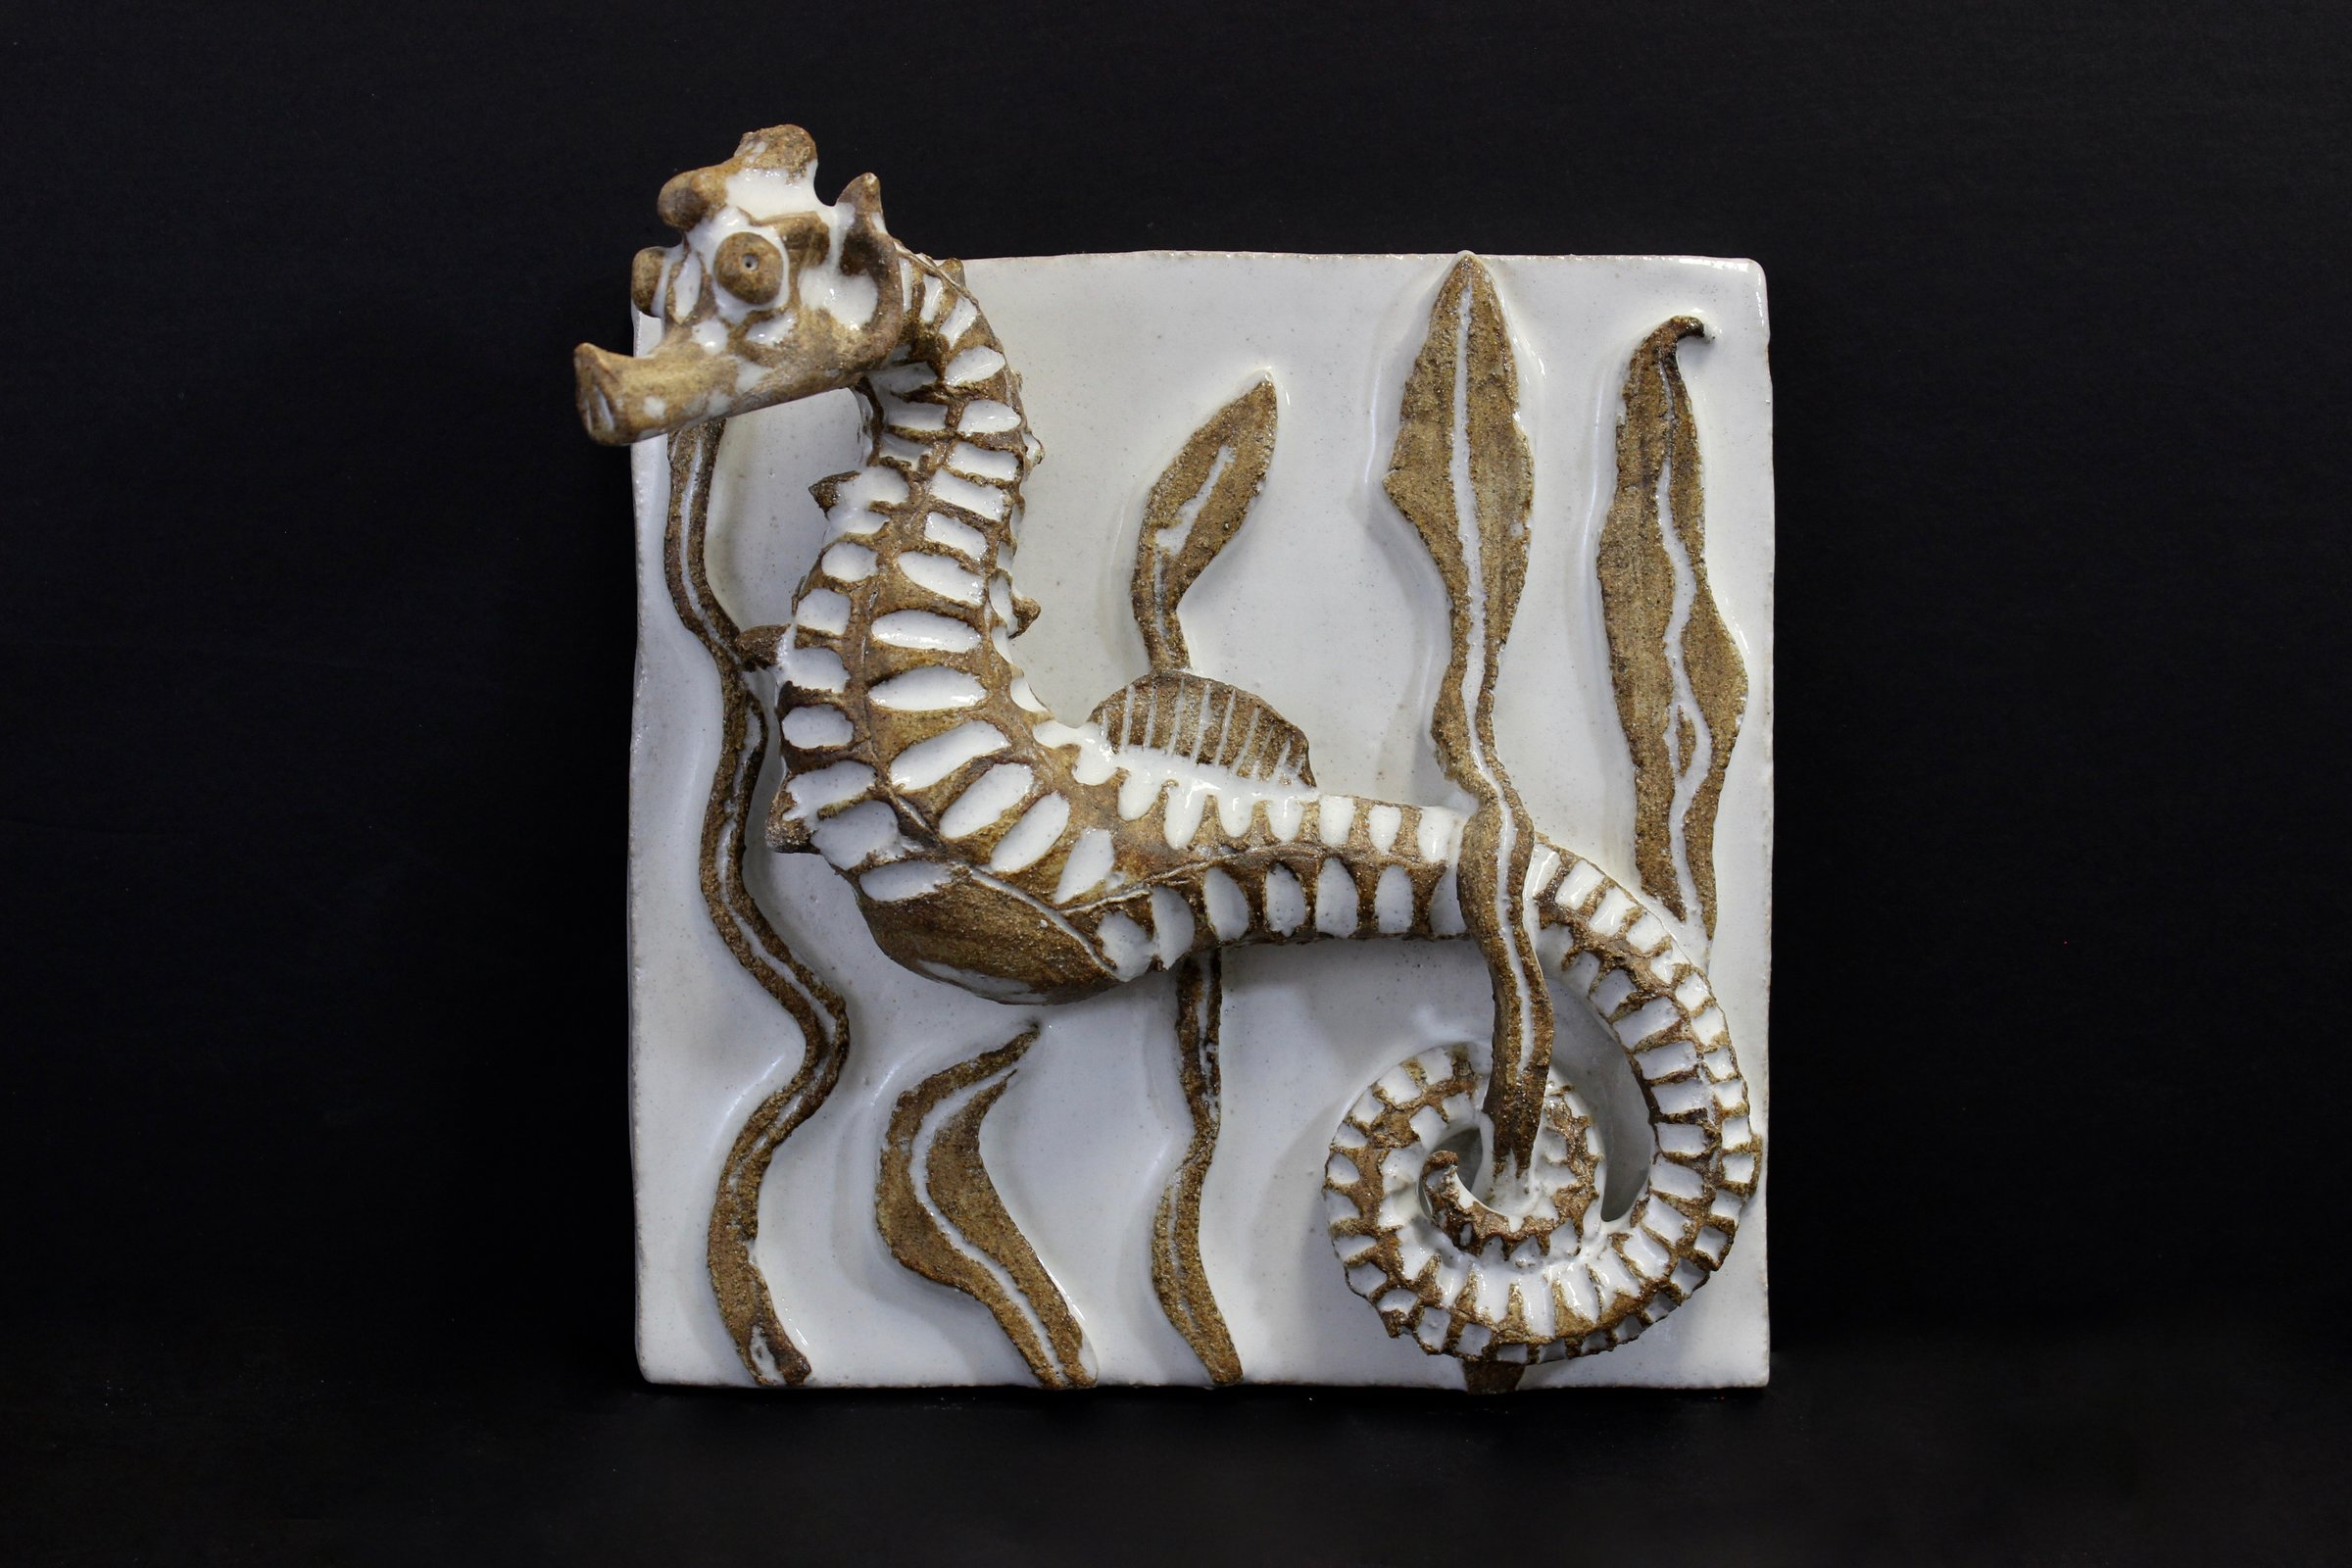 Seahorse Tile By Shayne Greco Ceramic Wall Sculpture